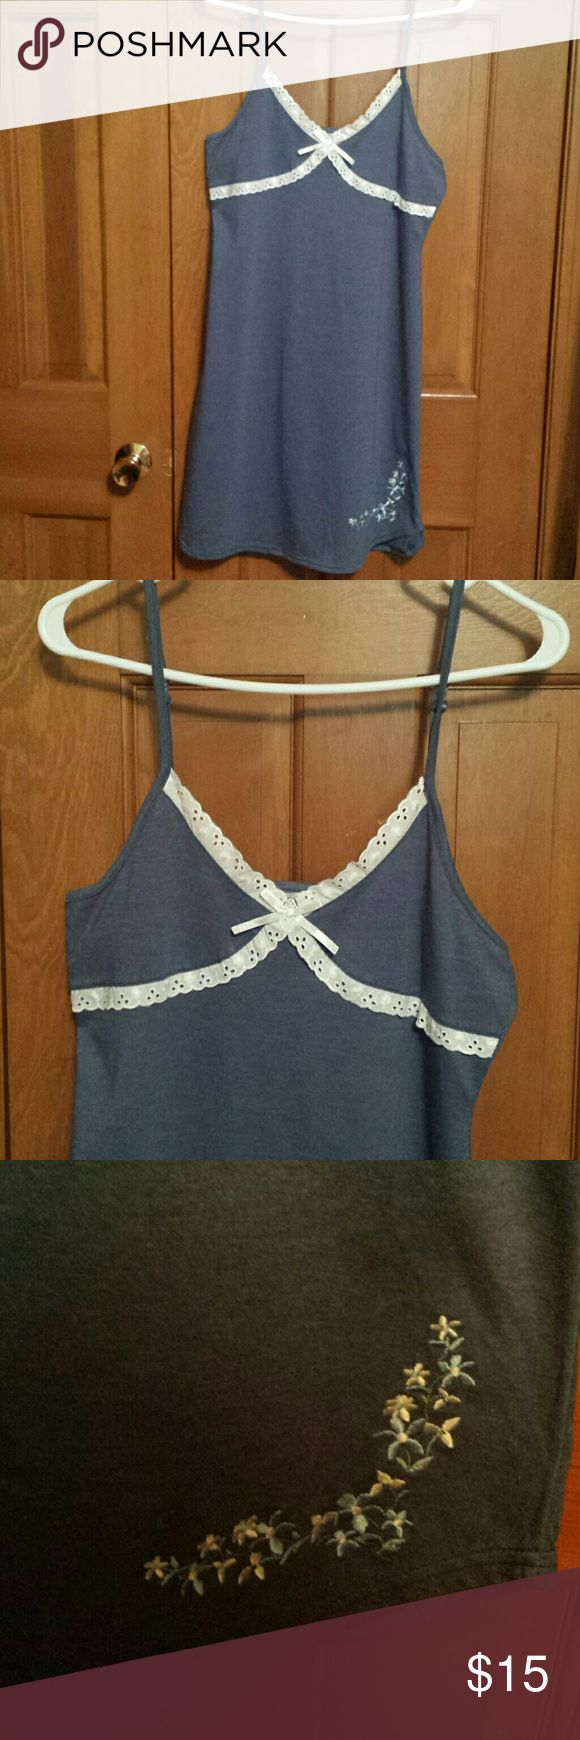 New Very Cute Nightgown sz Med New w/o tags, denim blue w/white lace. Polyester and cotton, adjustable straps. Age Group  Intimates & Sleepwear Chemises & Slips